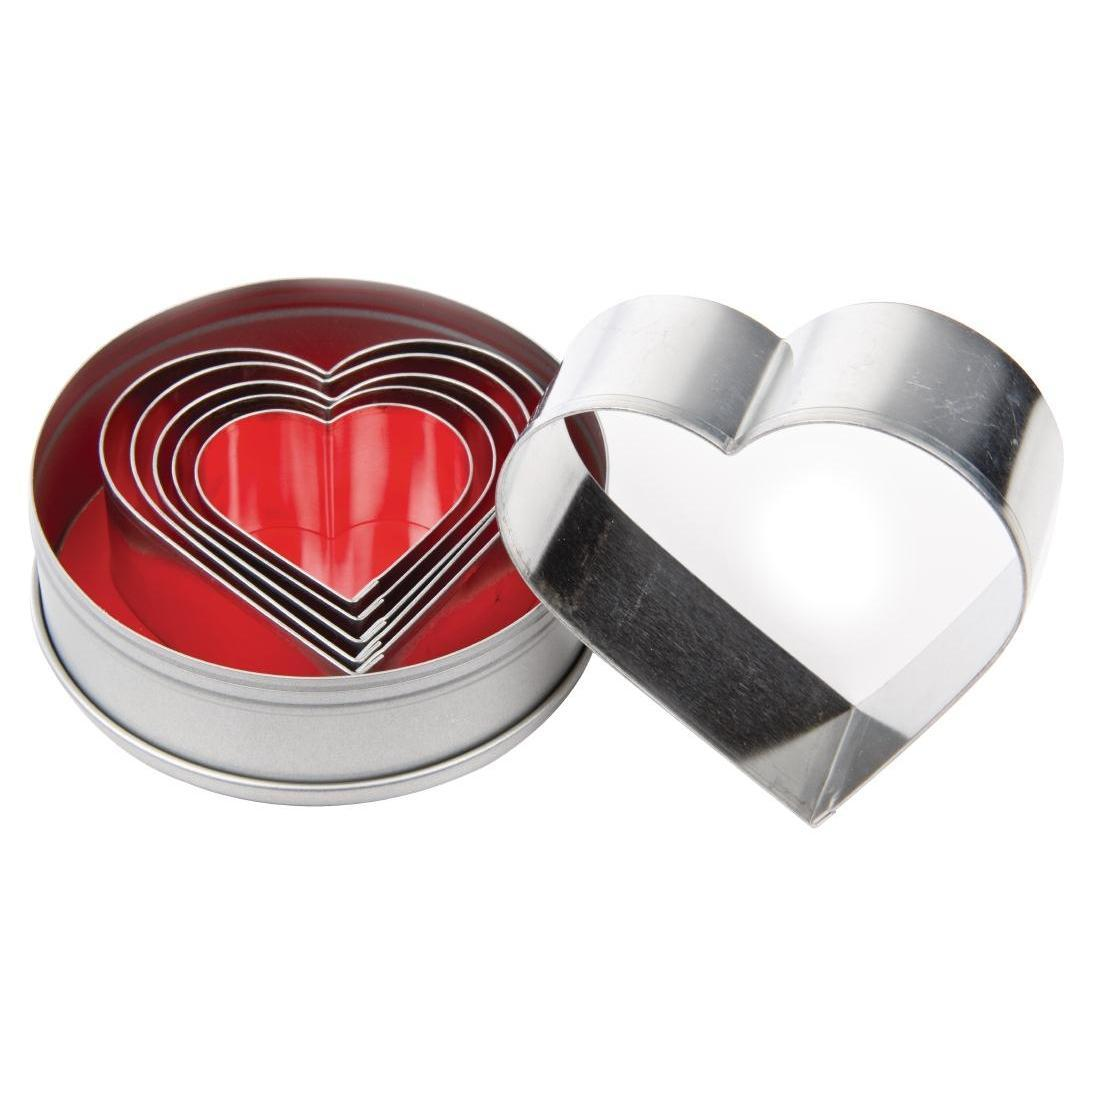 Vogue Heart Pastry Cutter Set - Case 6 - E025